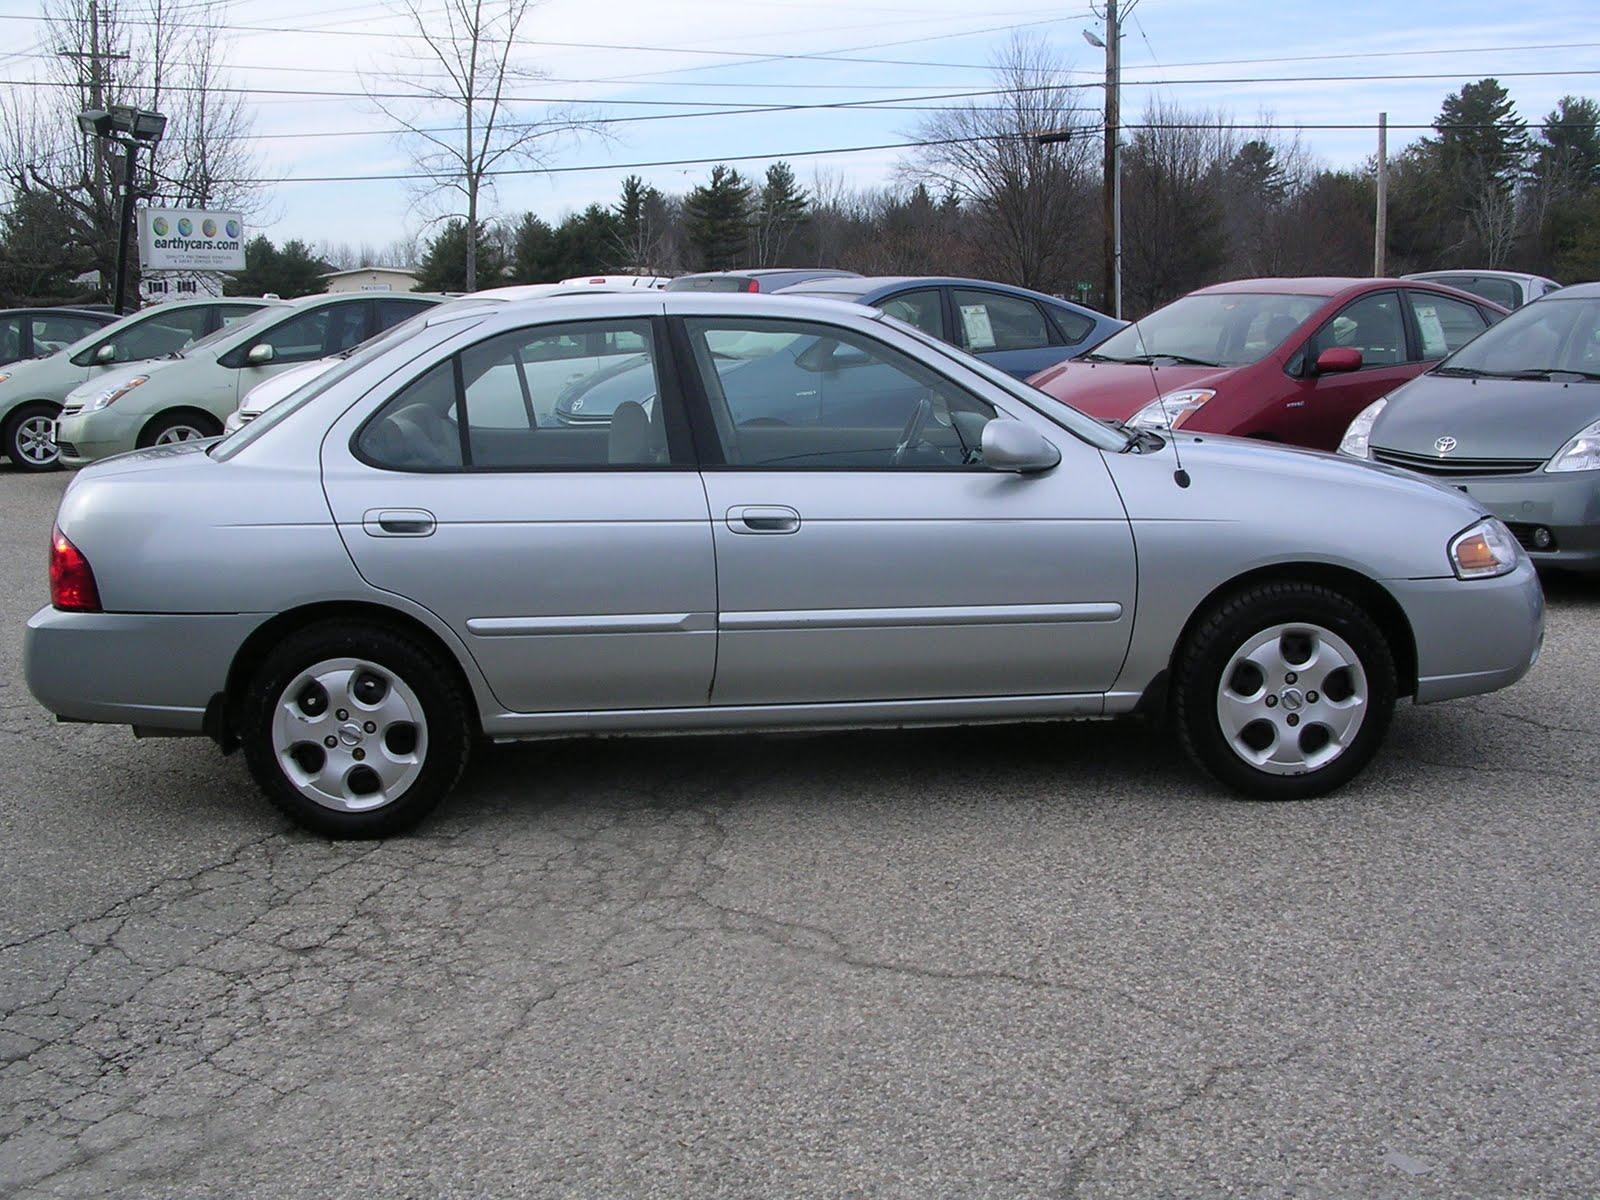 2004 Nissan Sentra - Information and photos - Zomb Drive